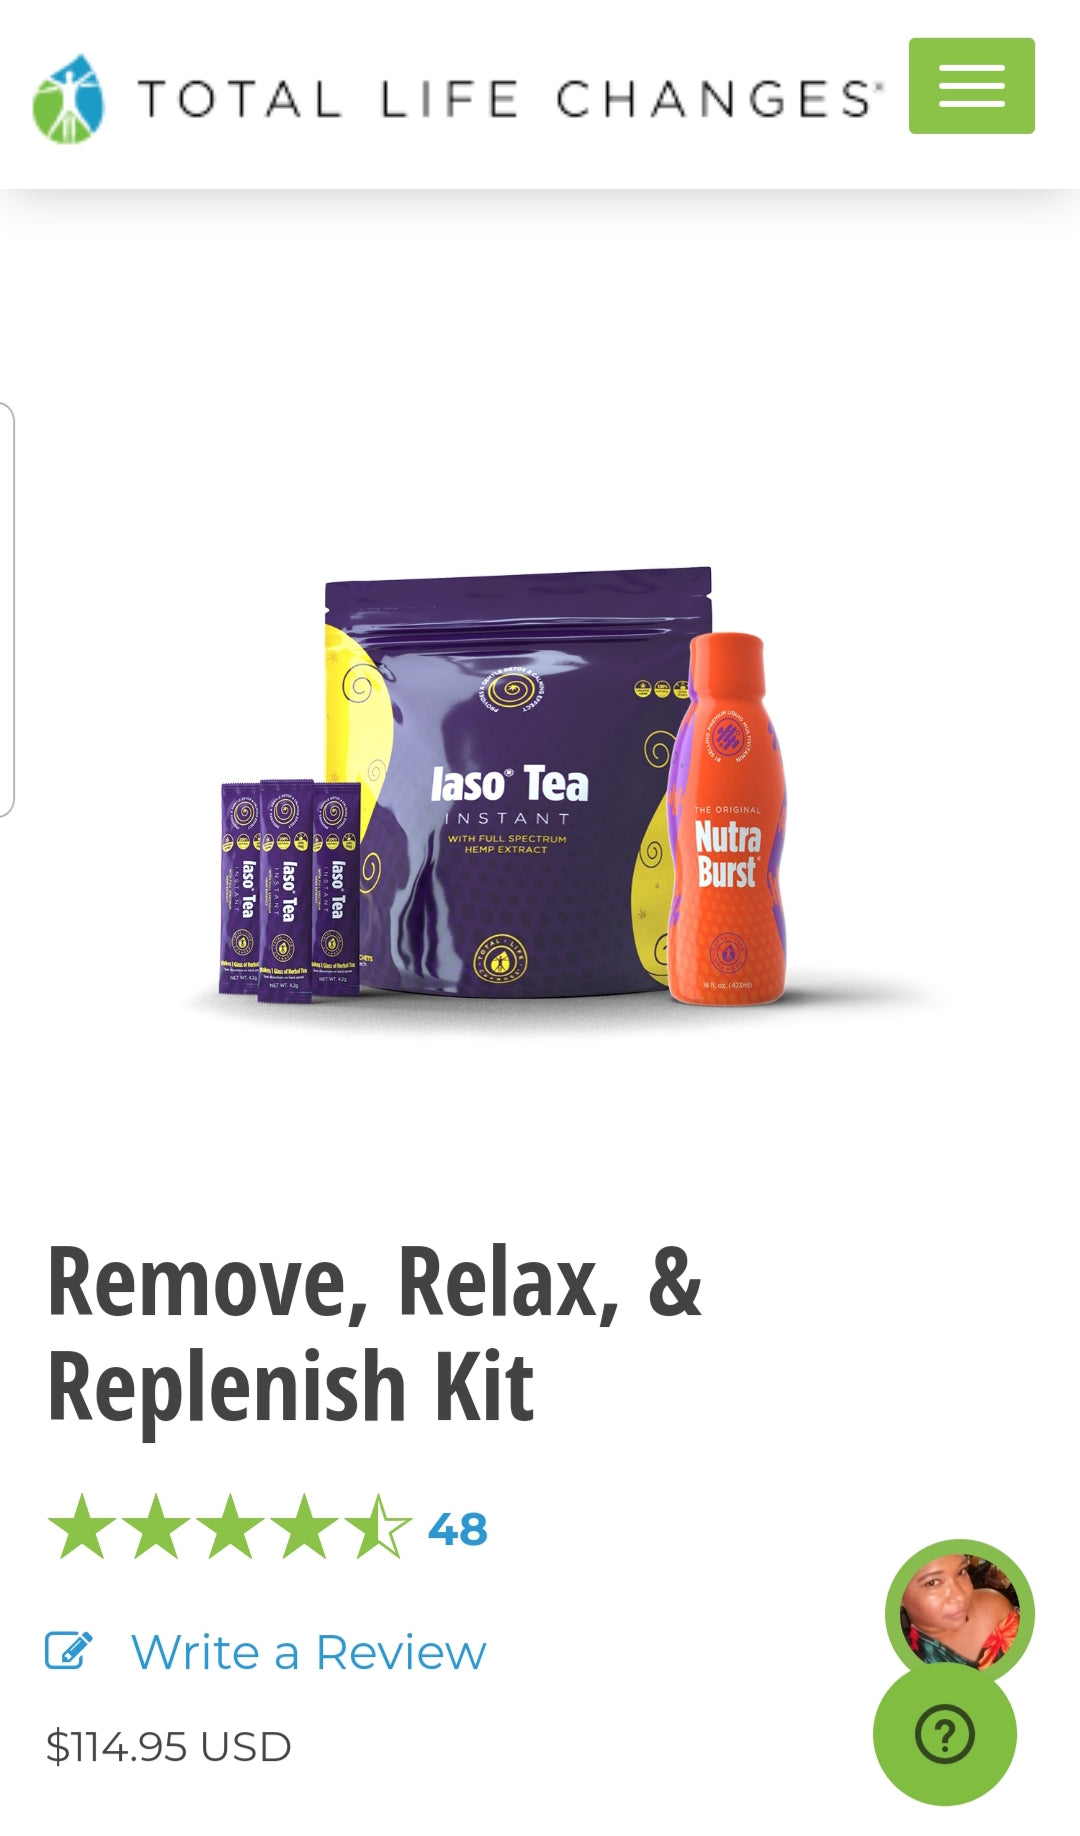 Remove, Relax, and Replenish Kit